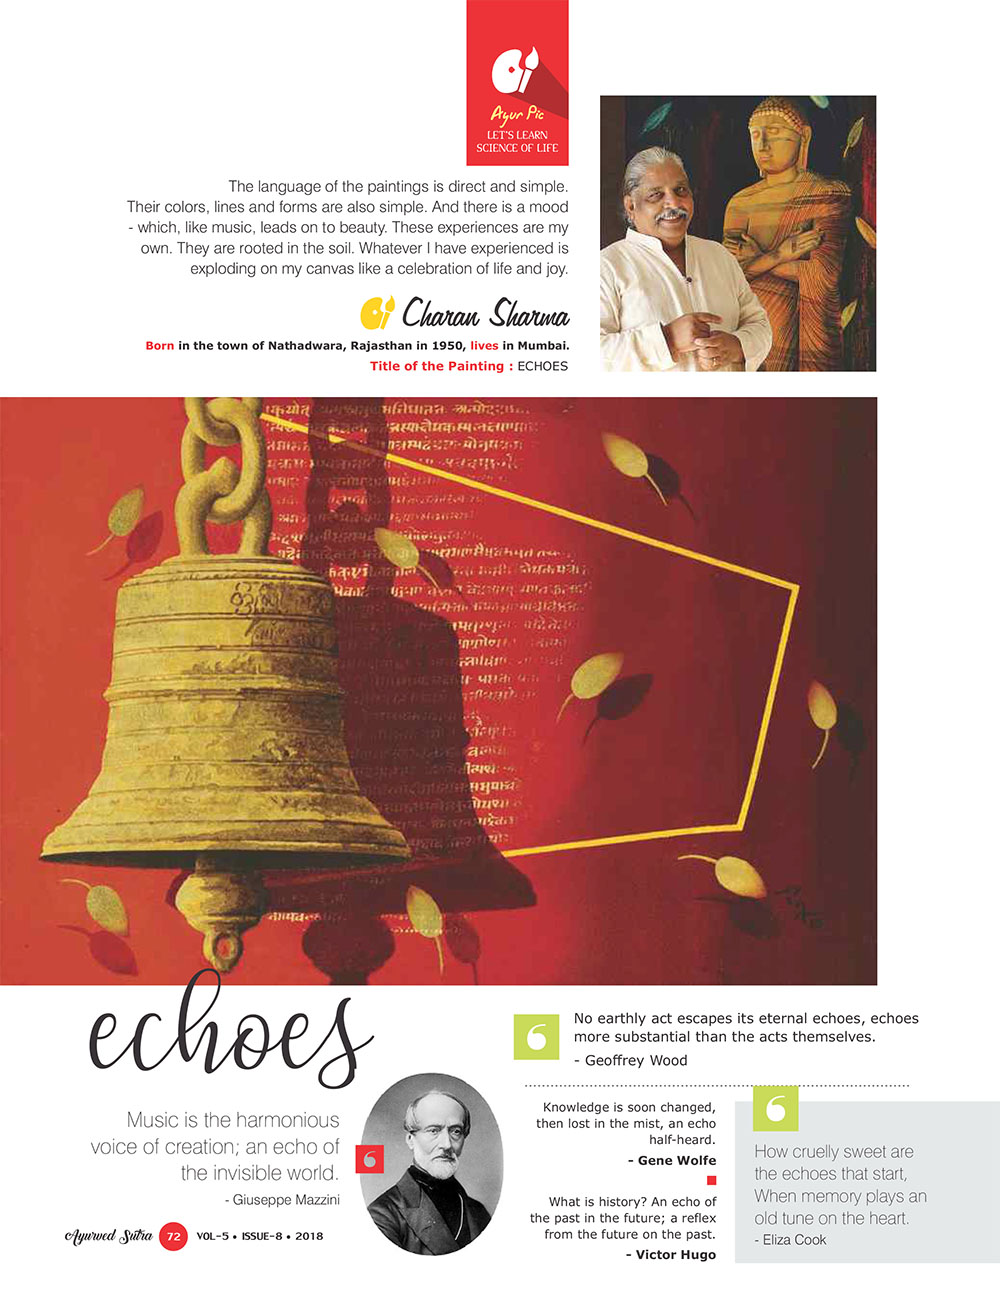 Ayurvedsutra Vol 05 issue 08 74 - Echoes